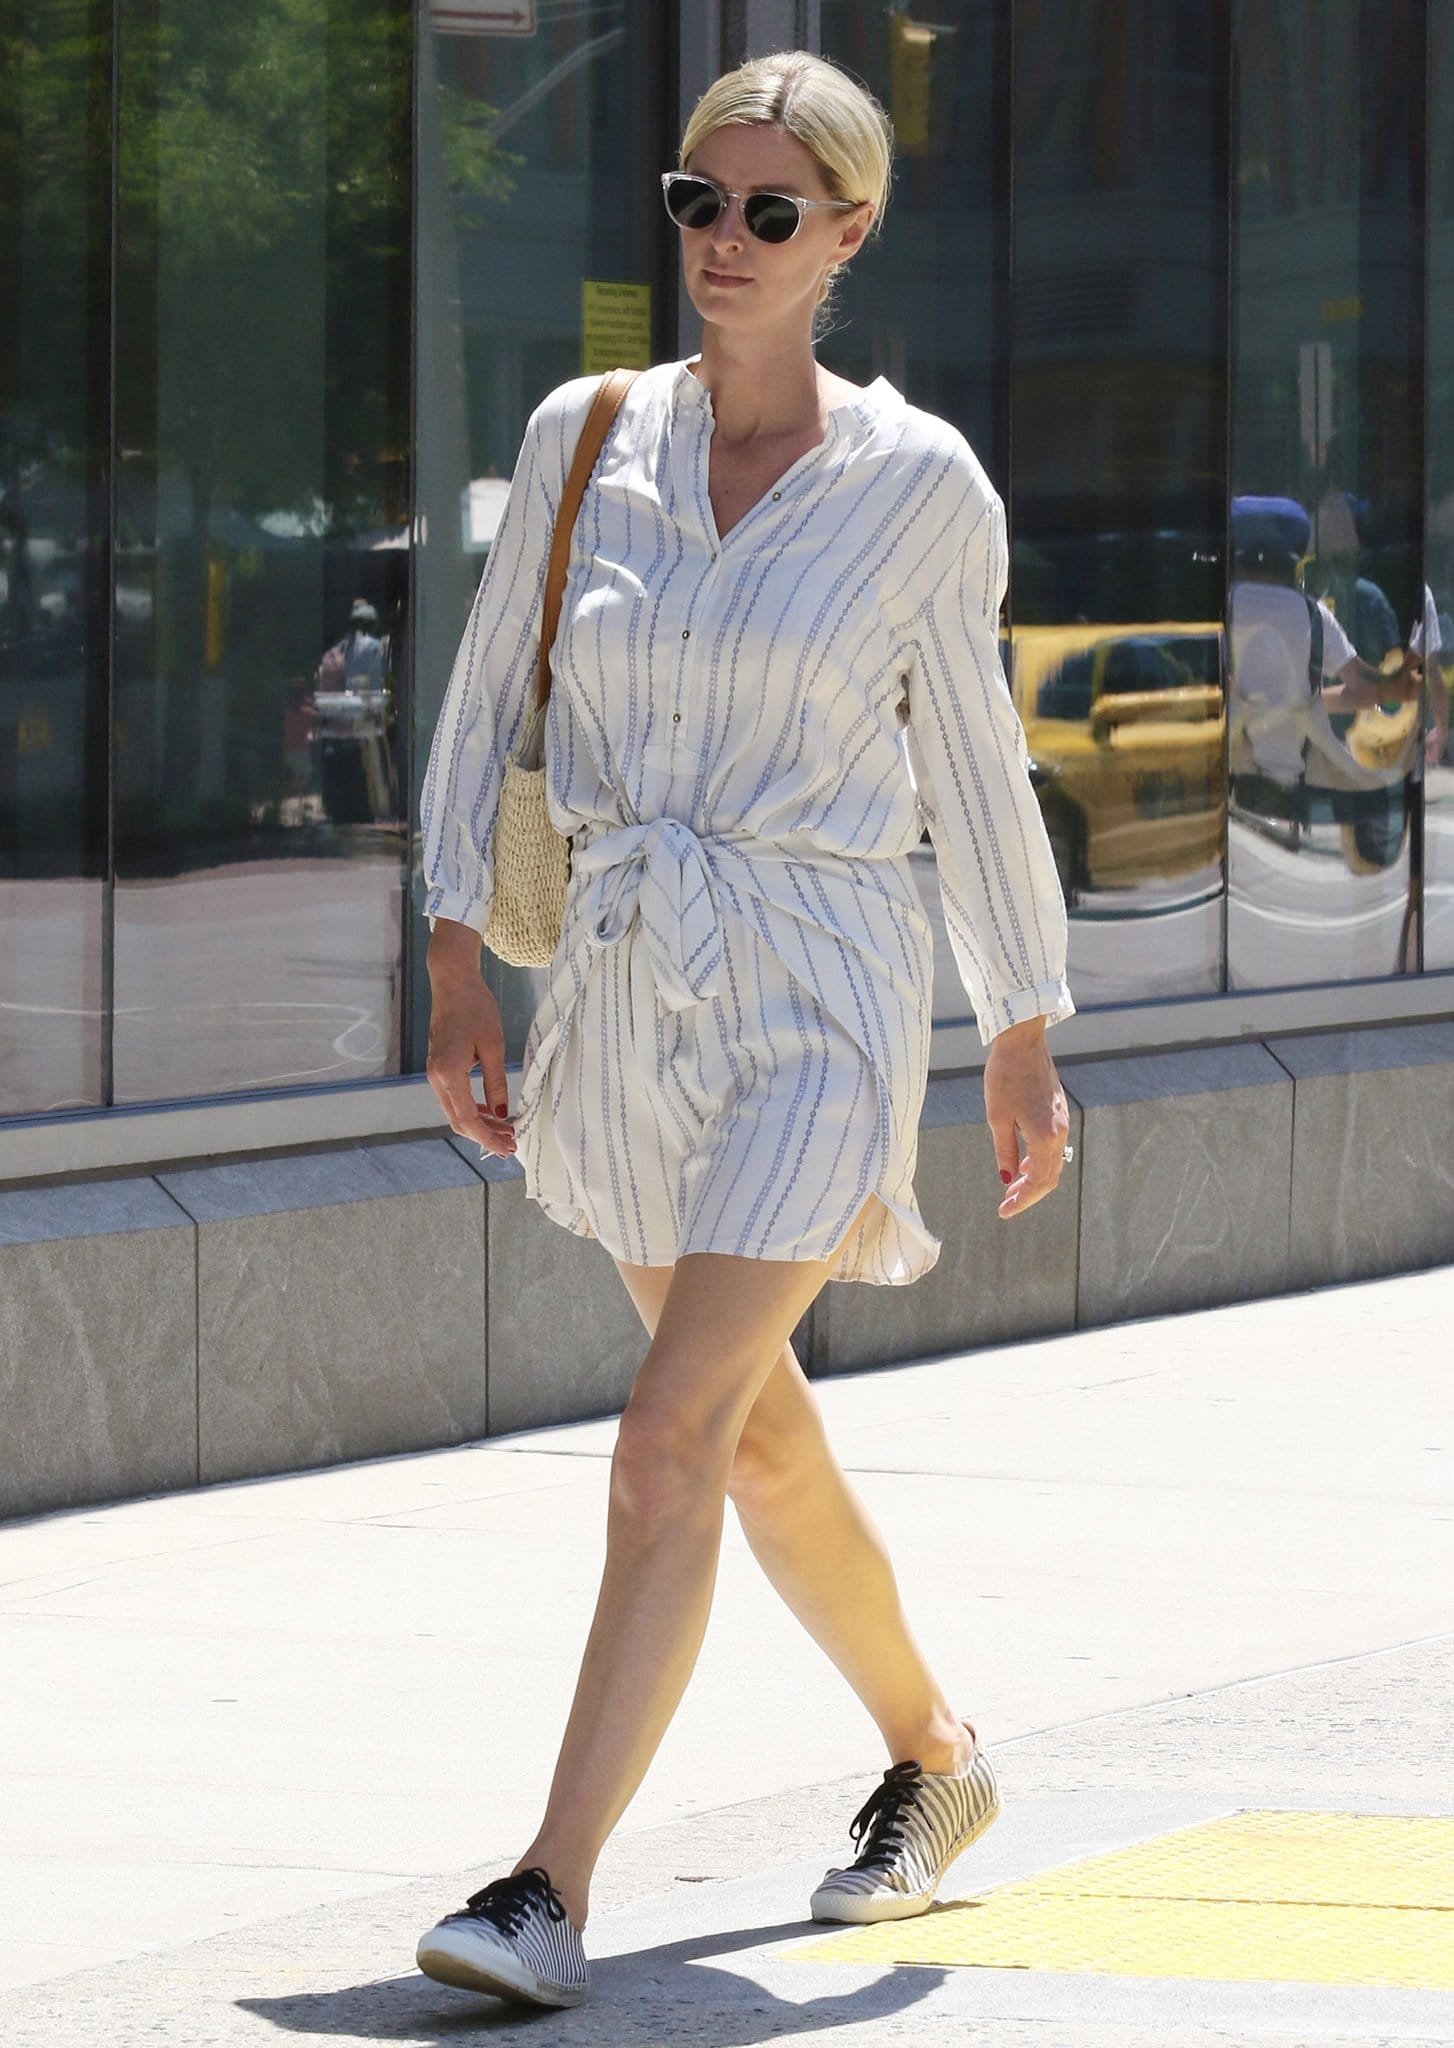 Nicky Hilton runs errands in a summery white striped romper in New York City on June 10, 2021